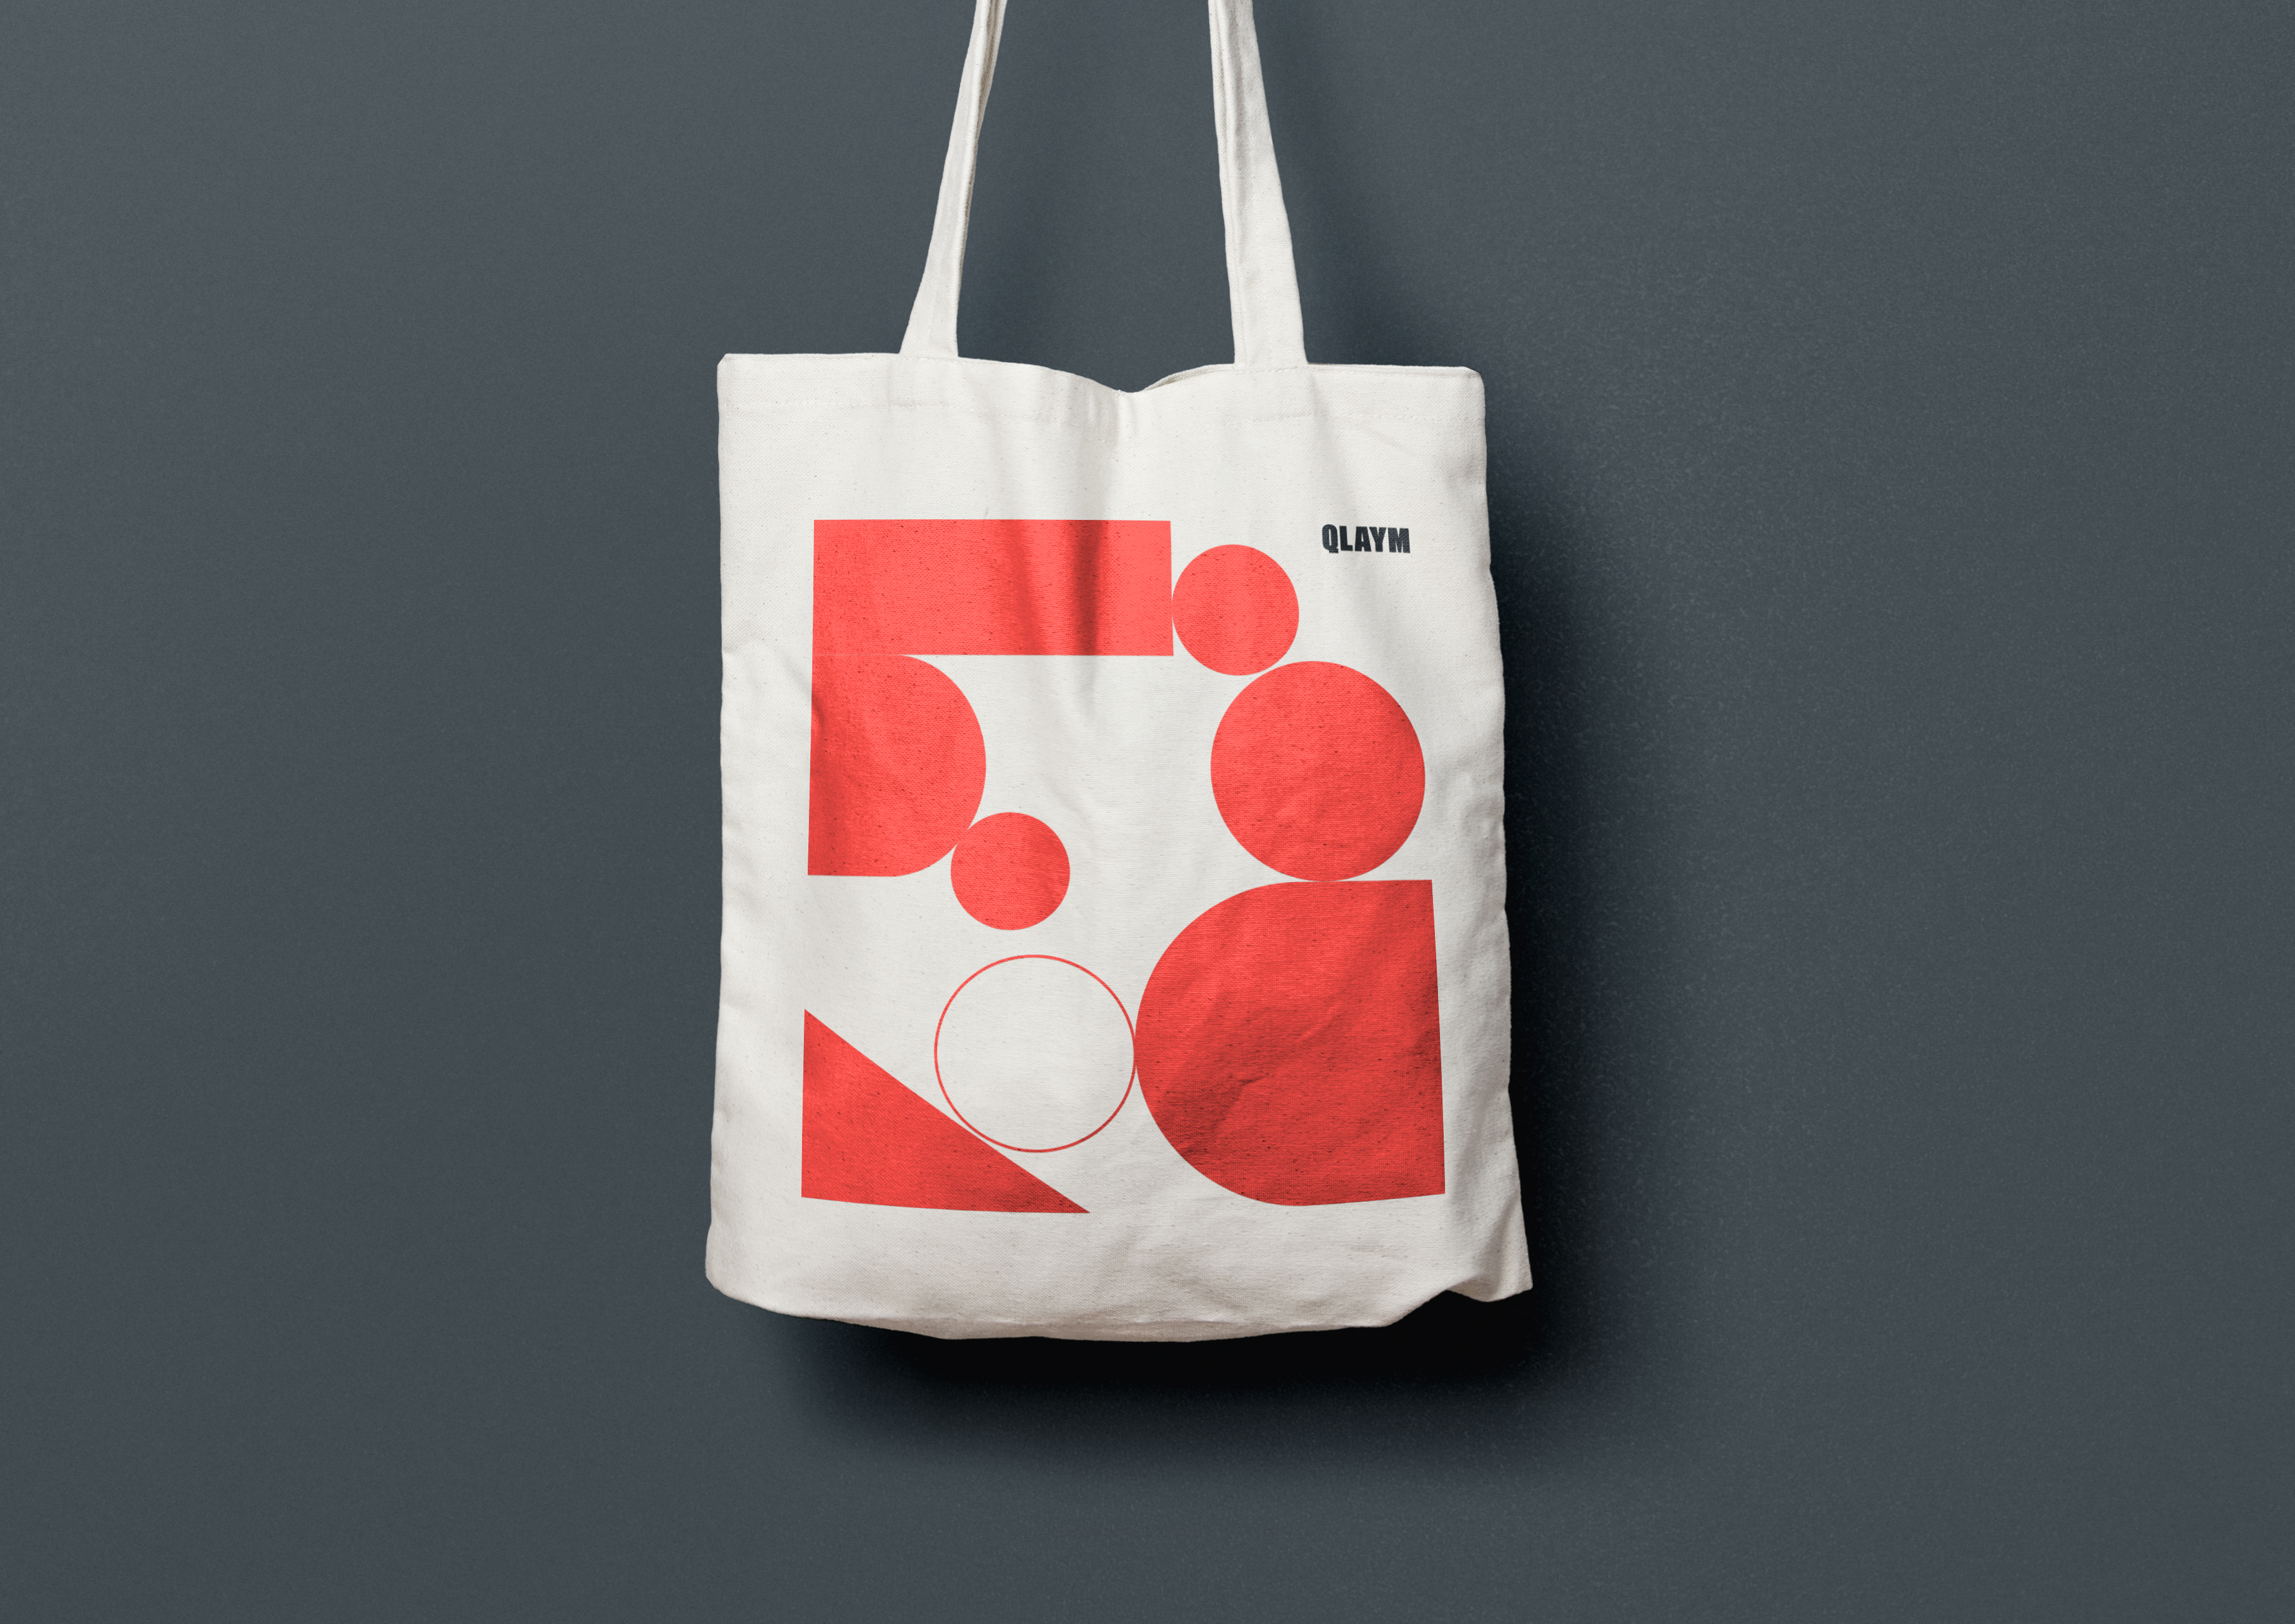 Tasche, Tote Bag, Employer Branding, Big Data, Start-Up, Identity